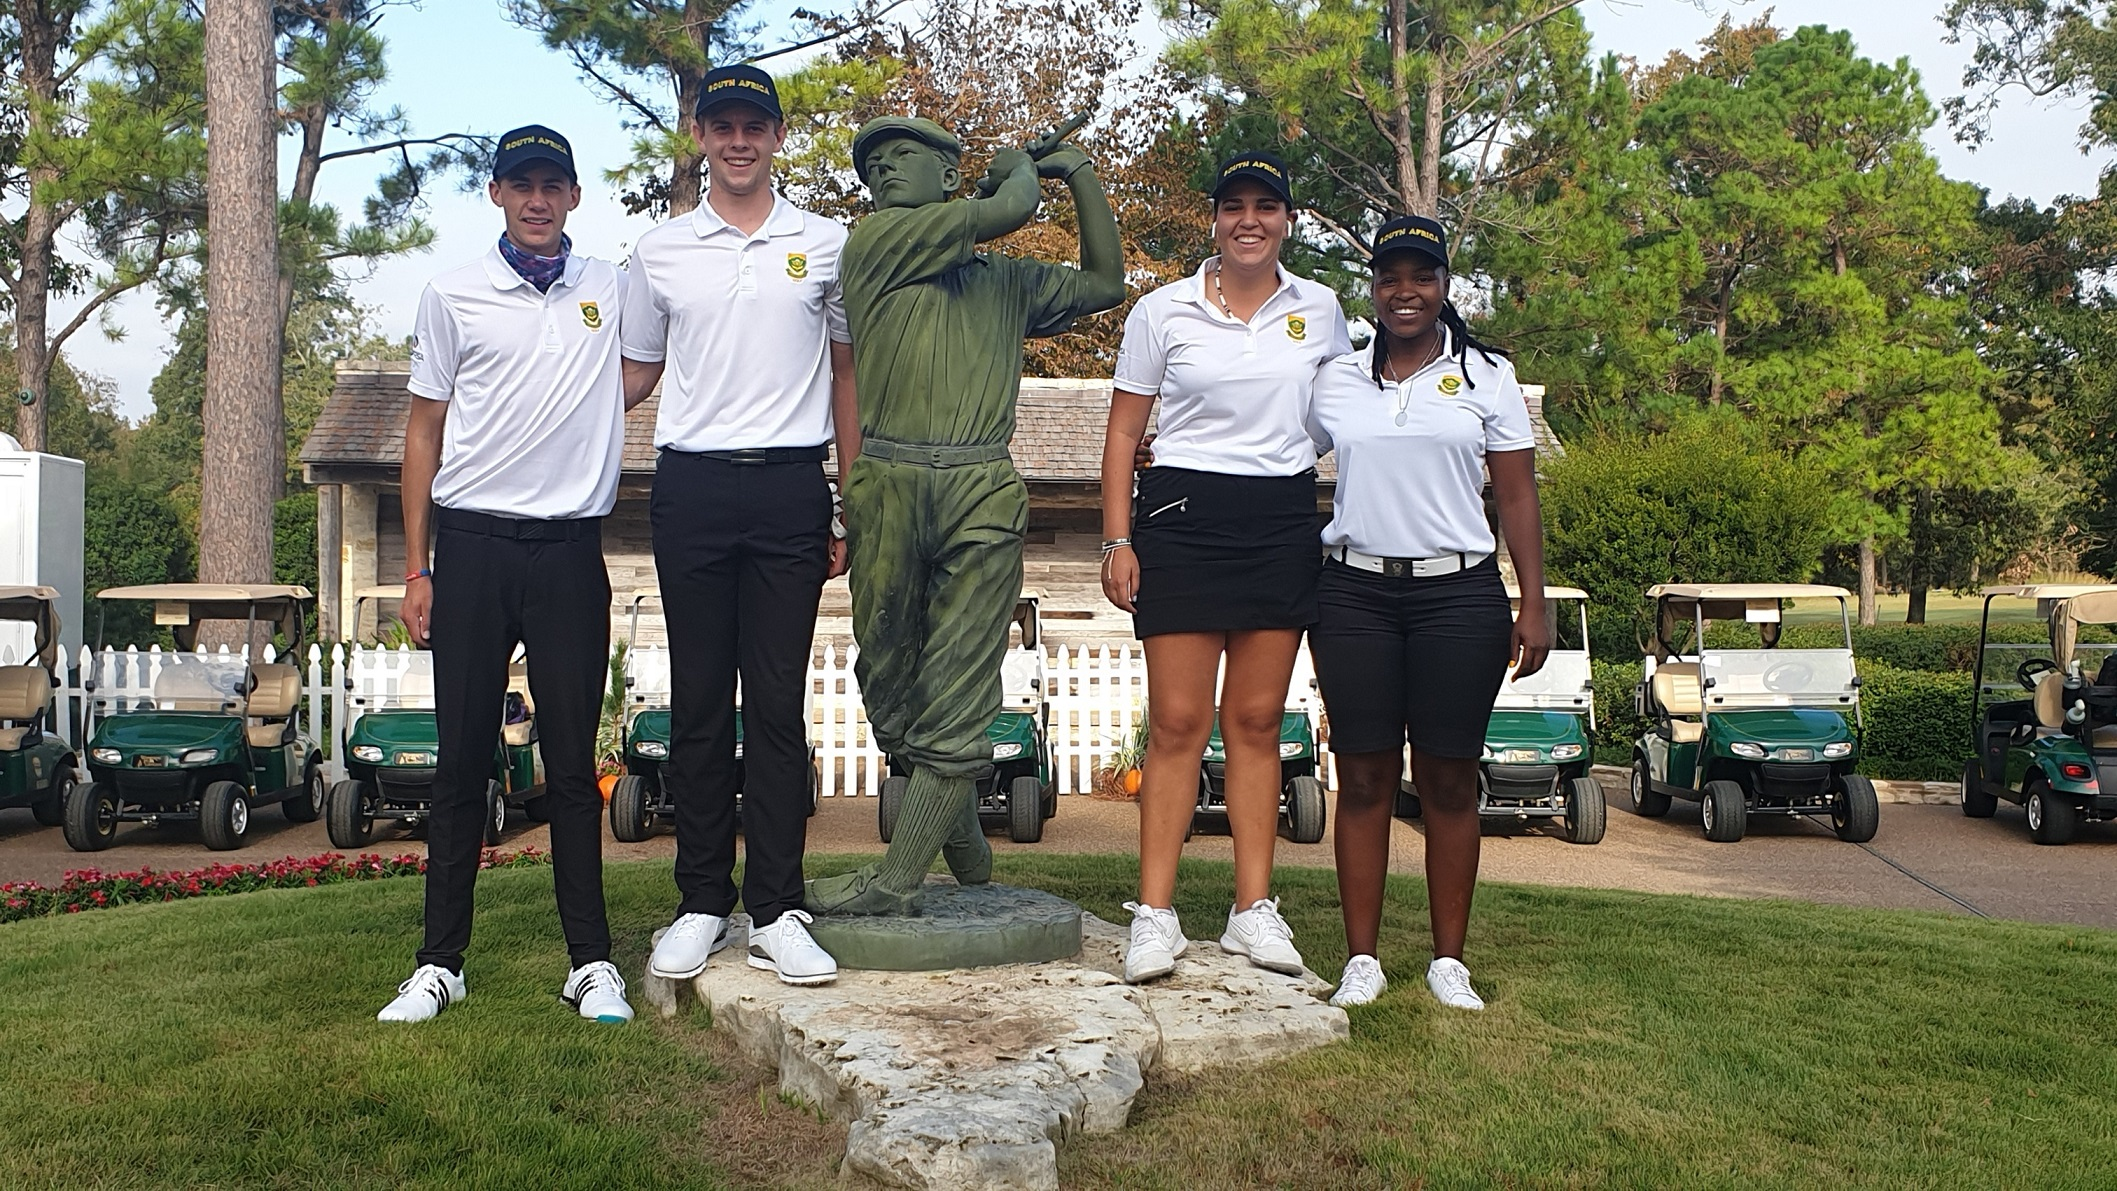 Mixed fortunes for GolfRSA Proteas in Texas